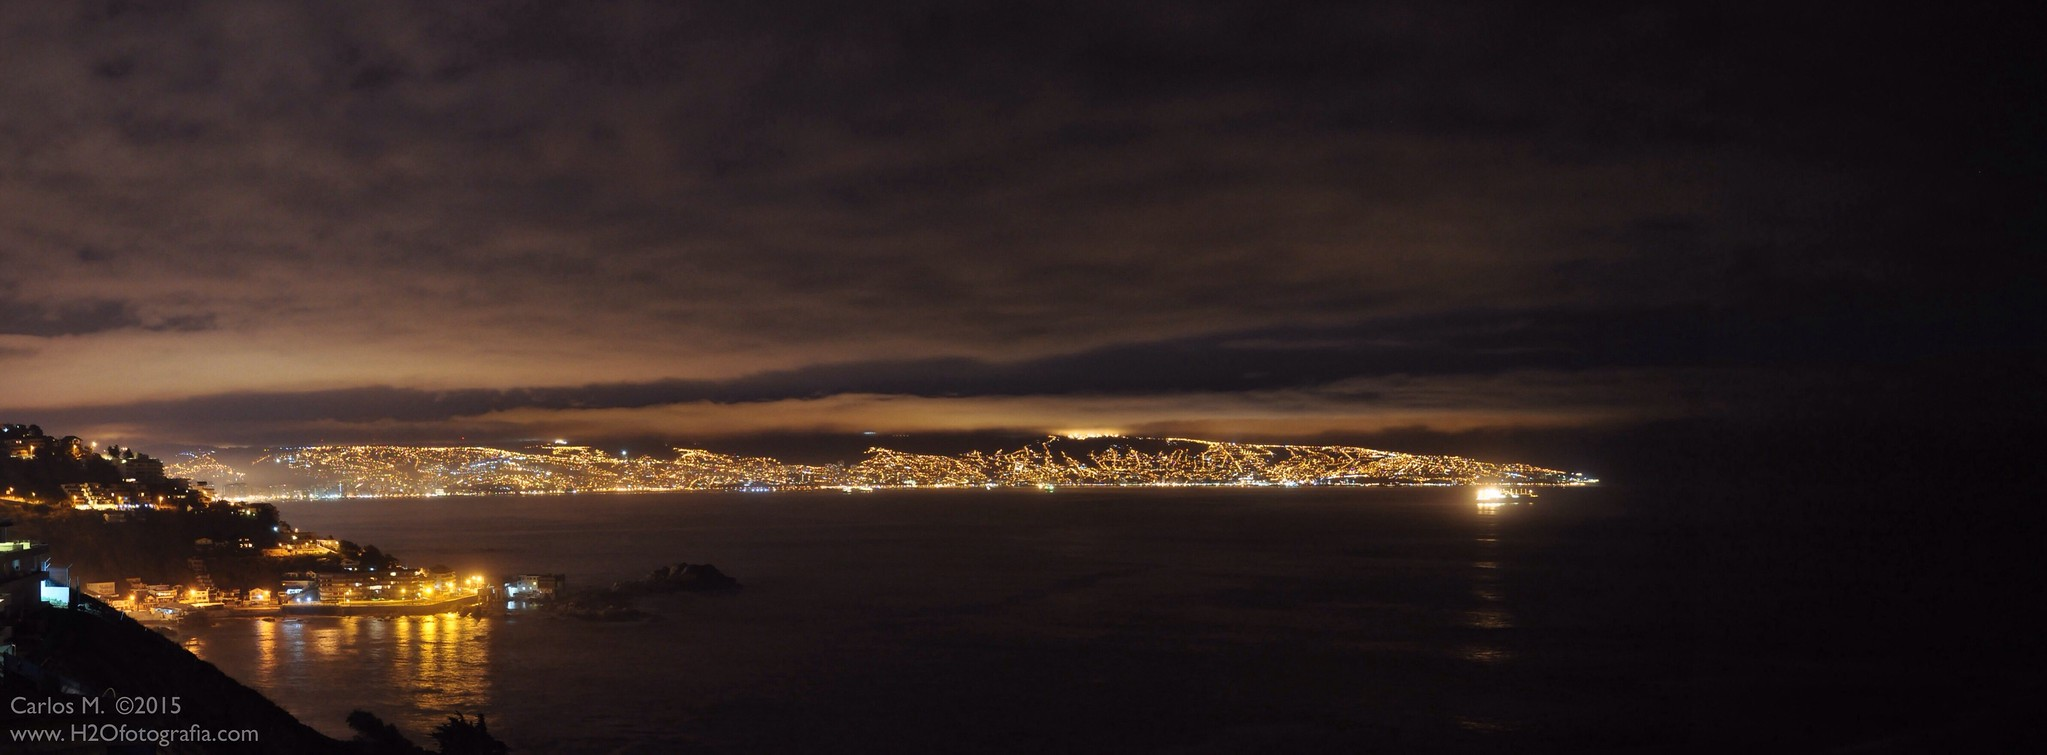 Nightview of Valparaiso